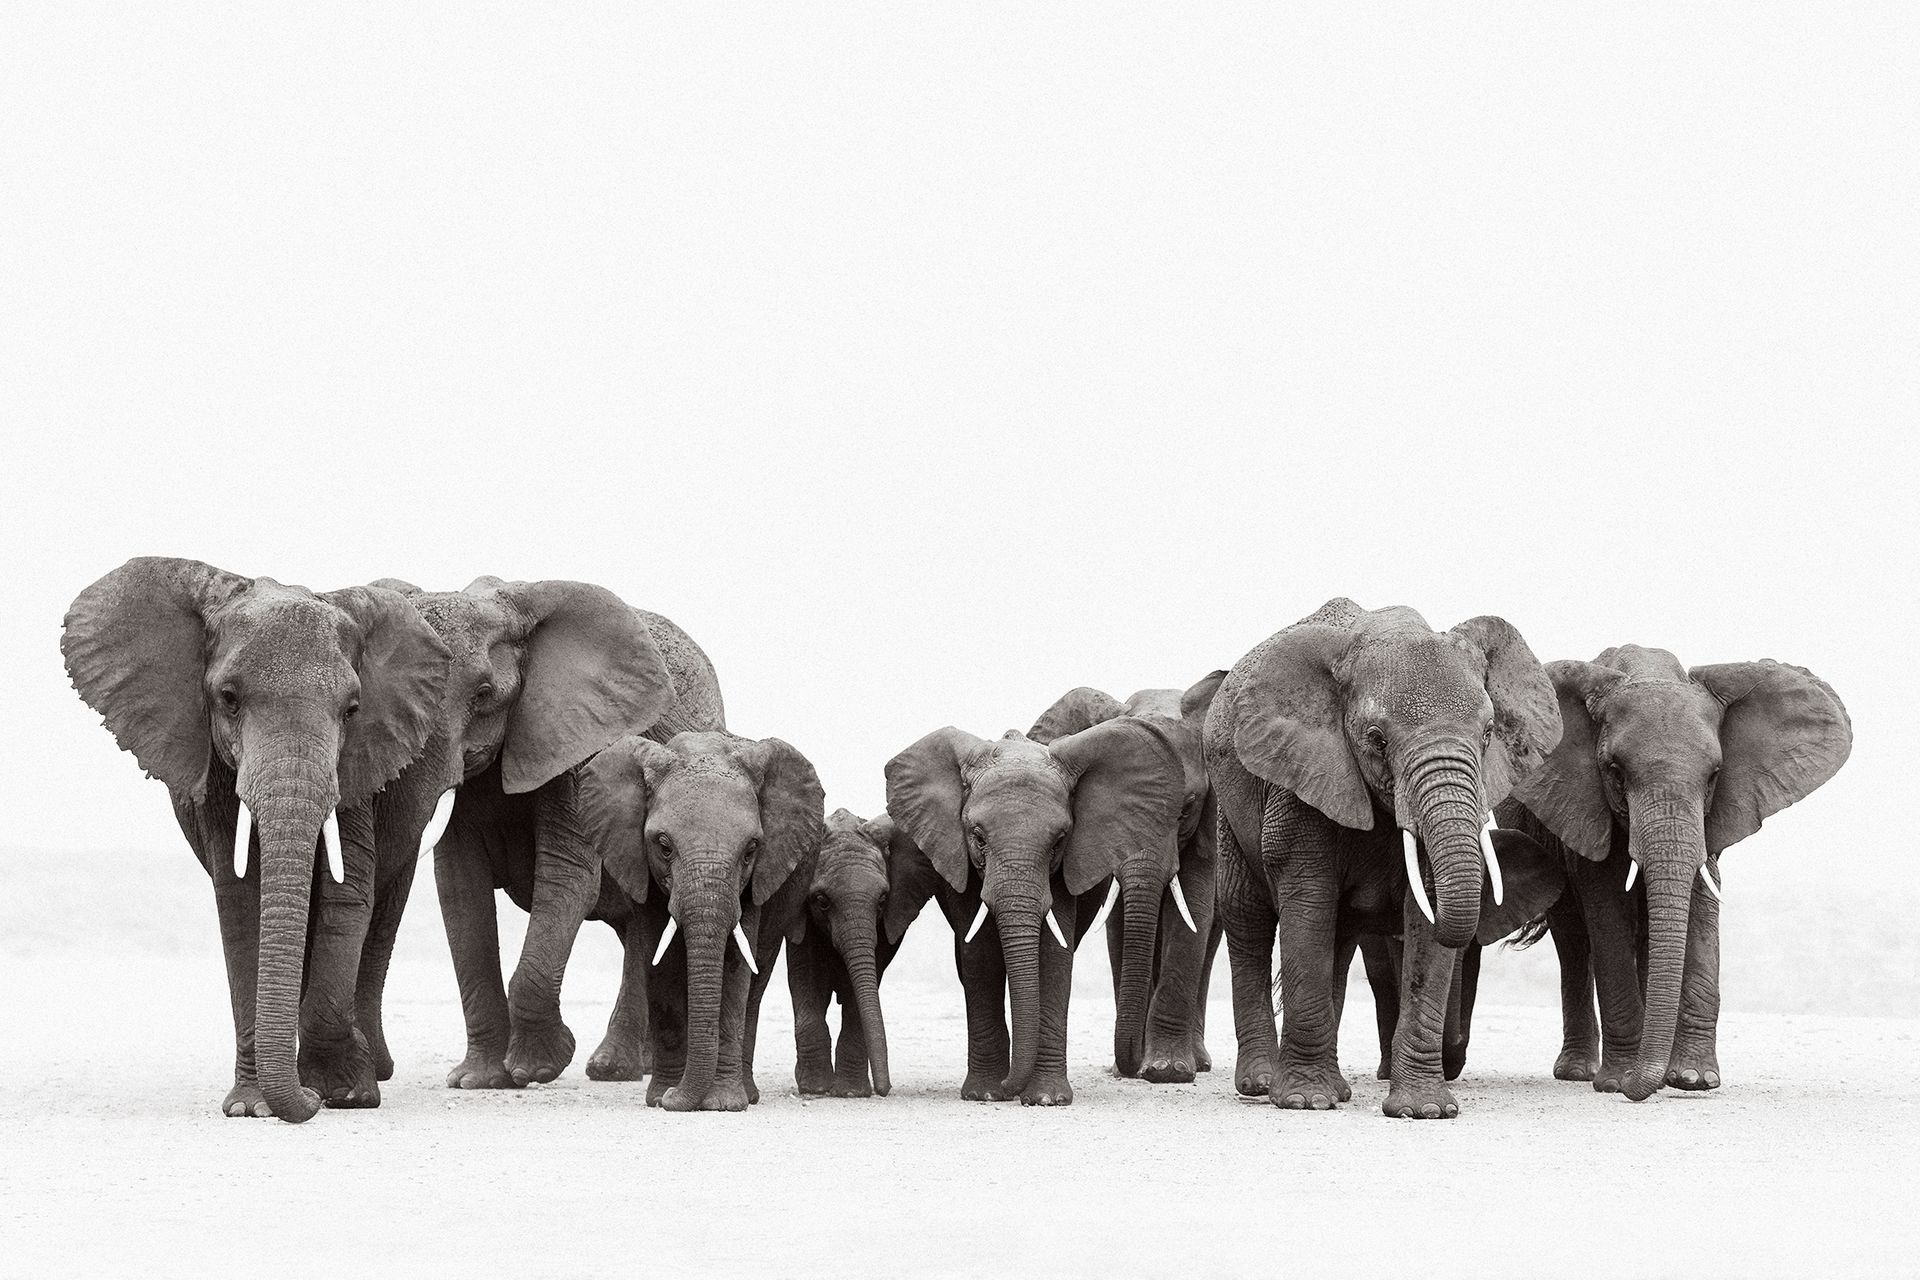 Colossal-Shadows-Super-Tuskers-of-East-Africa-Drew-Doggett-Wisdom's-Keepers.jpg